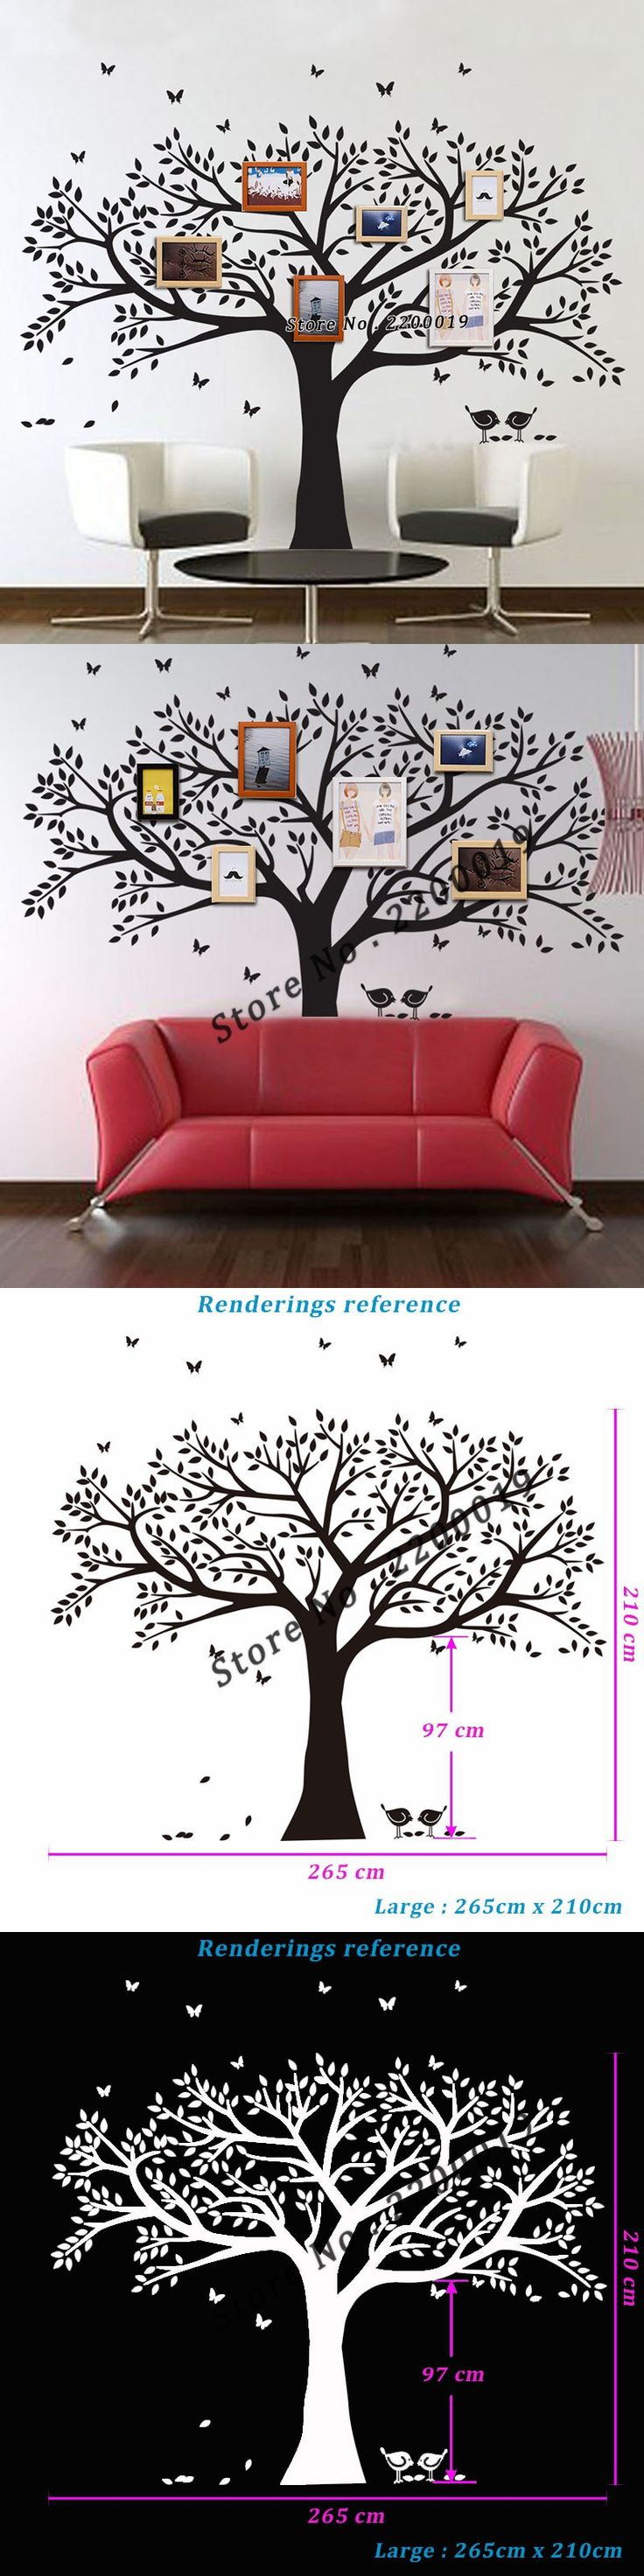 Picture frame family tree wall art tree decals trendy wall designs - Oversized 265x210cm Family Tree Decal Extra Large Wall Stickers Home Decor Living Room Wall Art Decor Warm Home Decoration